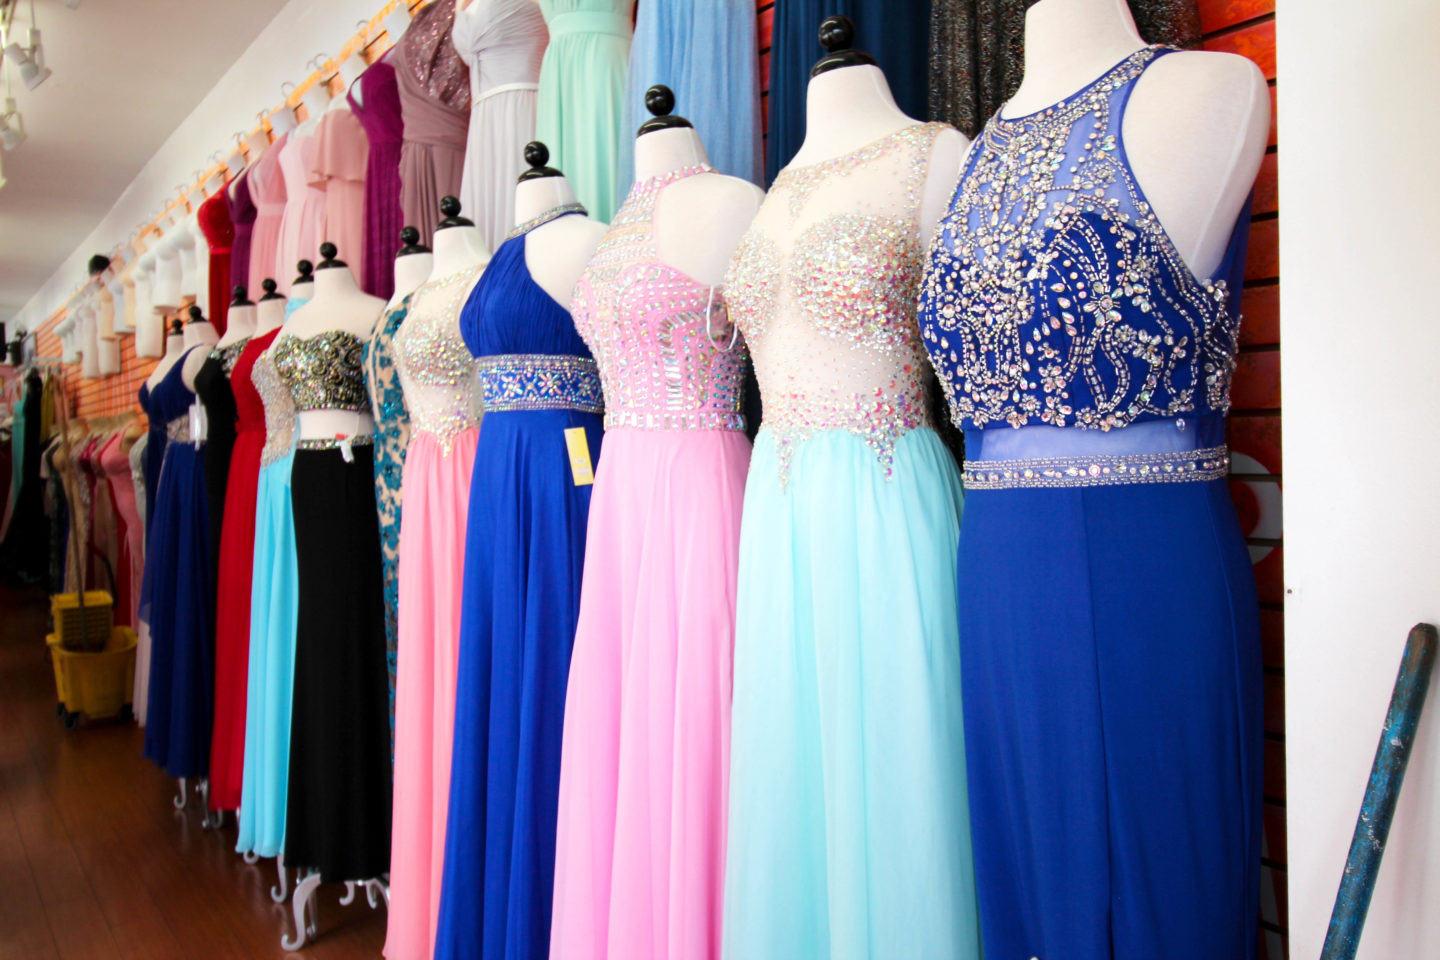 NewYorkDress carries beautiful dresses from top designers for weddings, prom, evening events and more. Shop our wide selection of gorgeous gowns today!